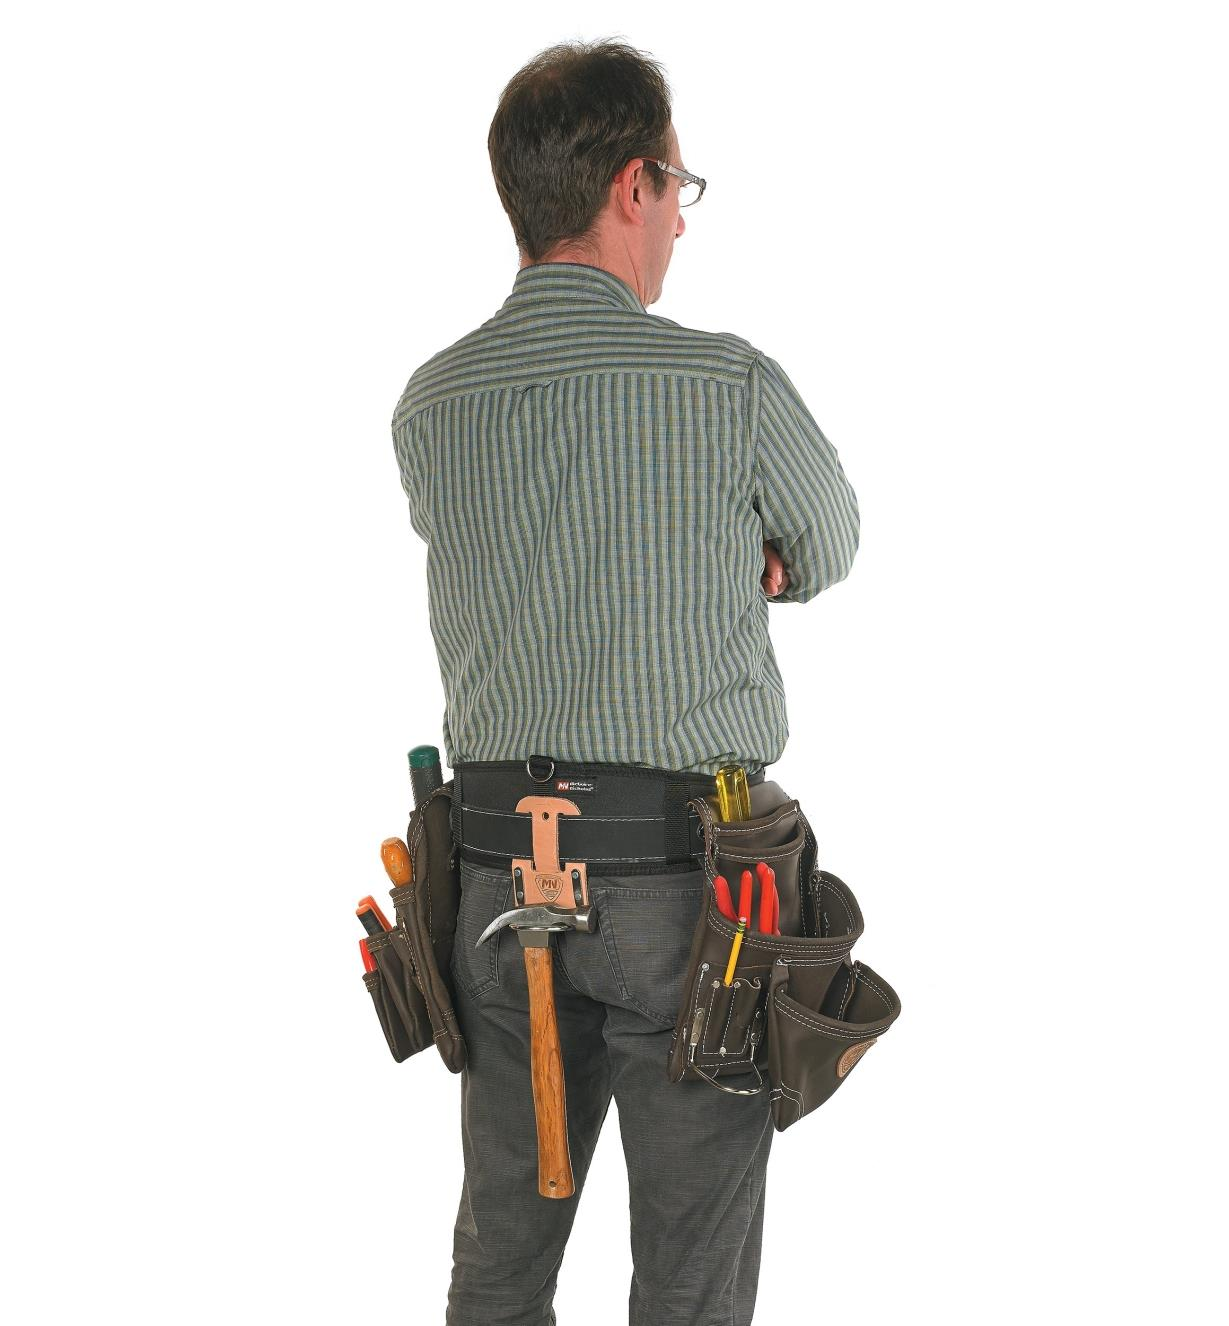 Back view of a man wearing the carpenter's four-piece apron set with the hammer holder at the back